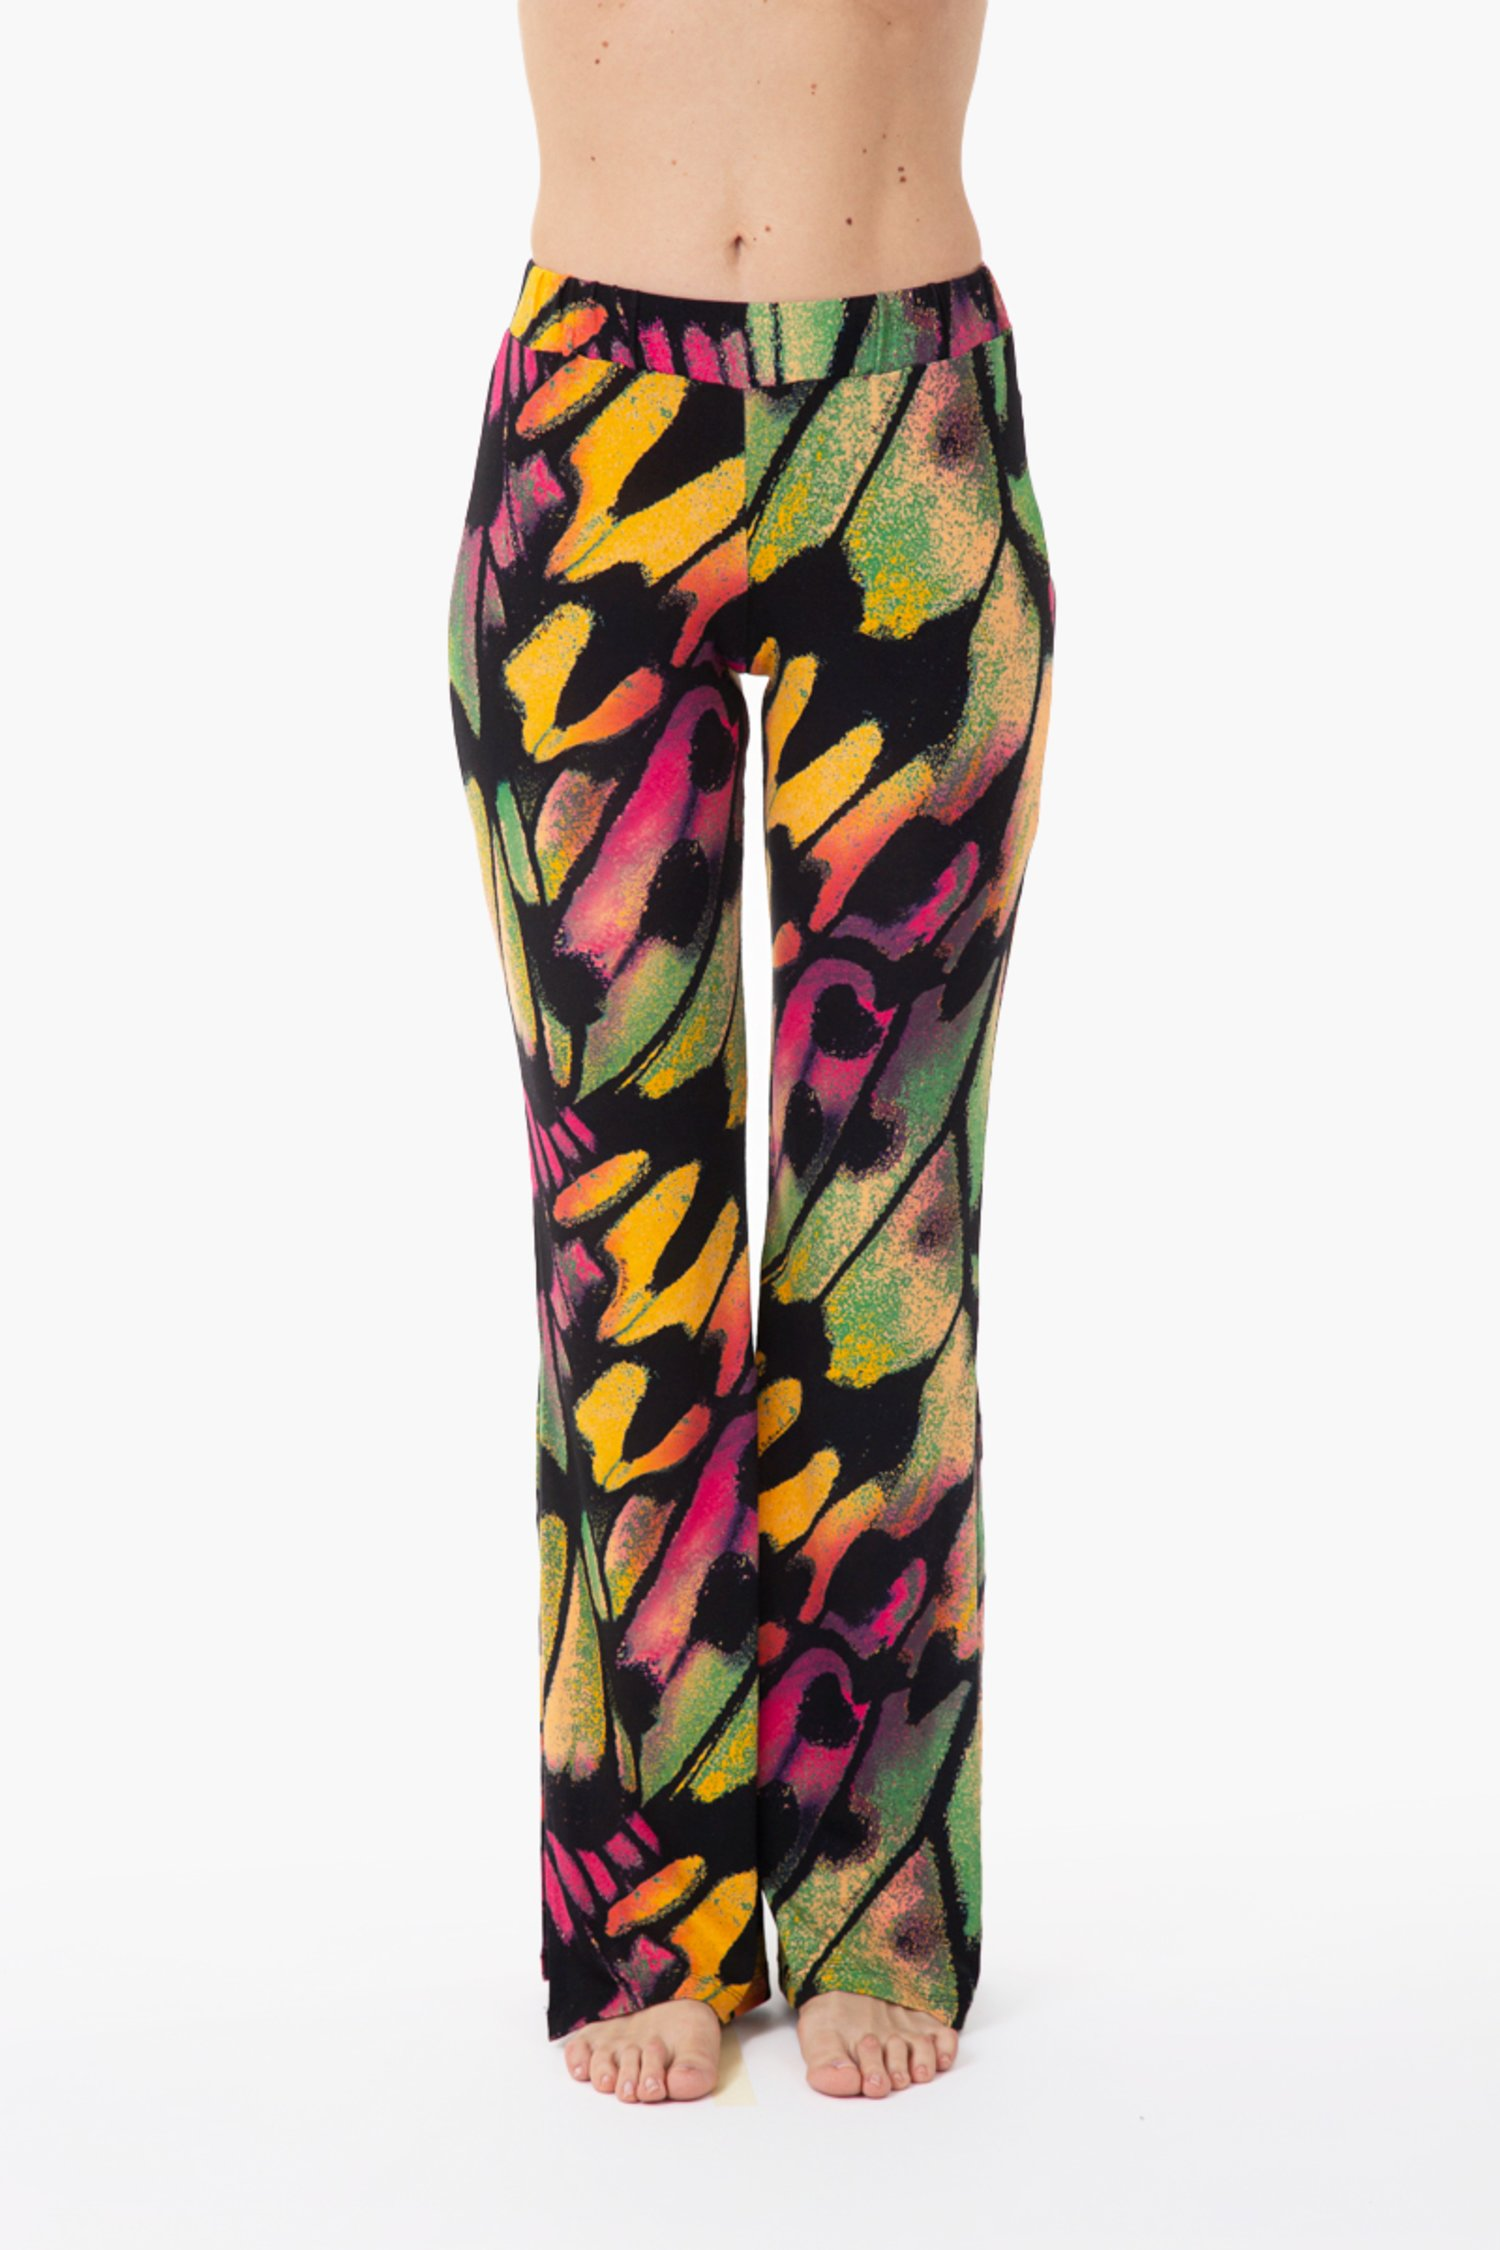 JERSEY PRINTED PANT WITH SIDE SLITS - Farfalle Arancio